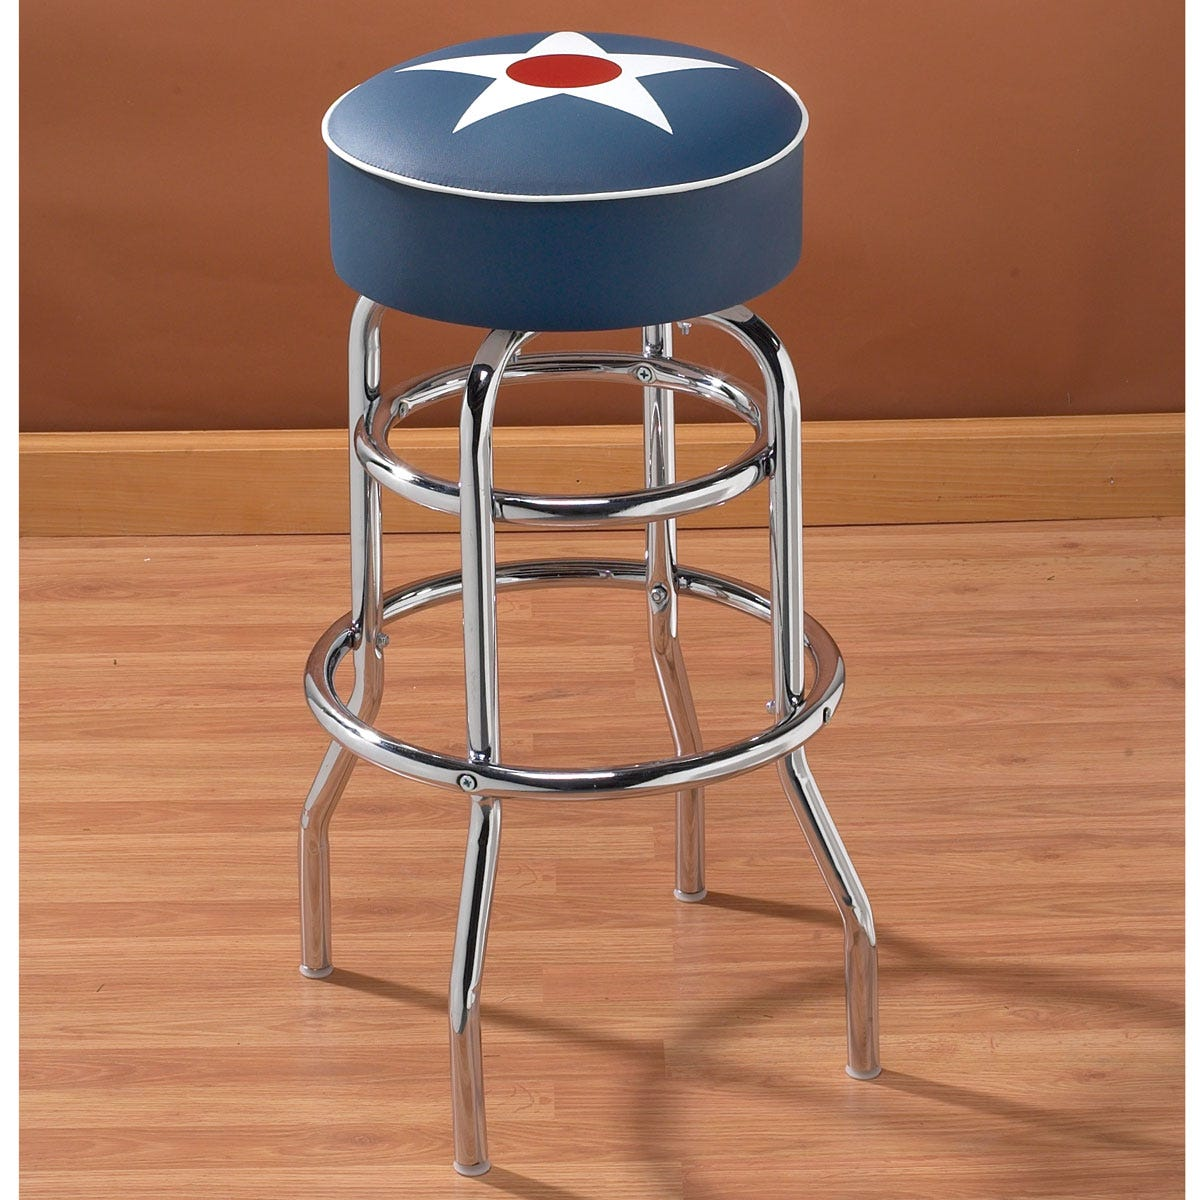 Military Insignia Bar Stool - from Sporty's Wright Bros Collection